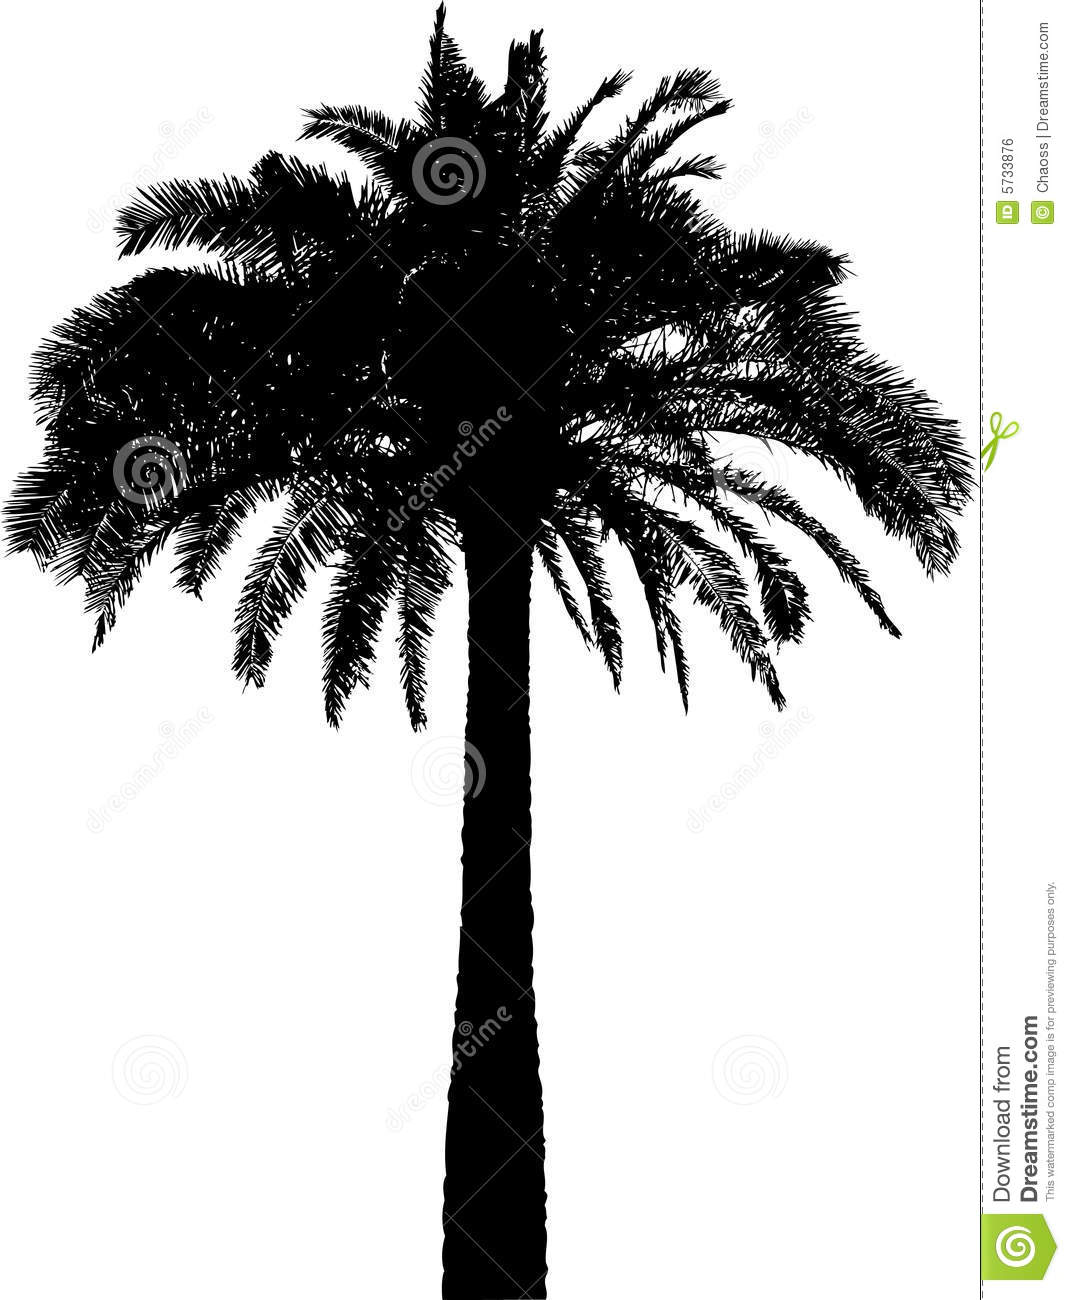 palm tree silhouette on white stock vector image 5733876. Black Bedroom Furniture Sets. Home Design Ideas